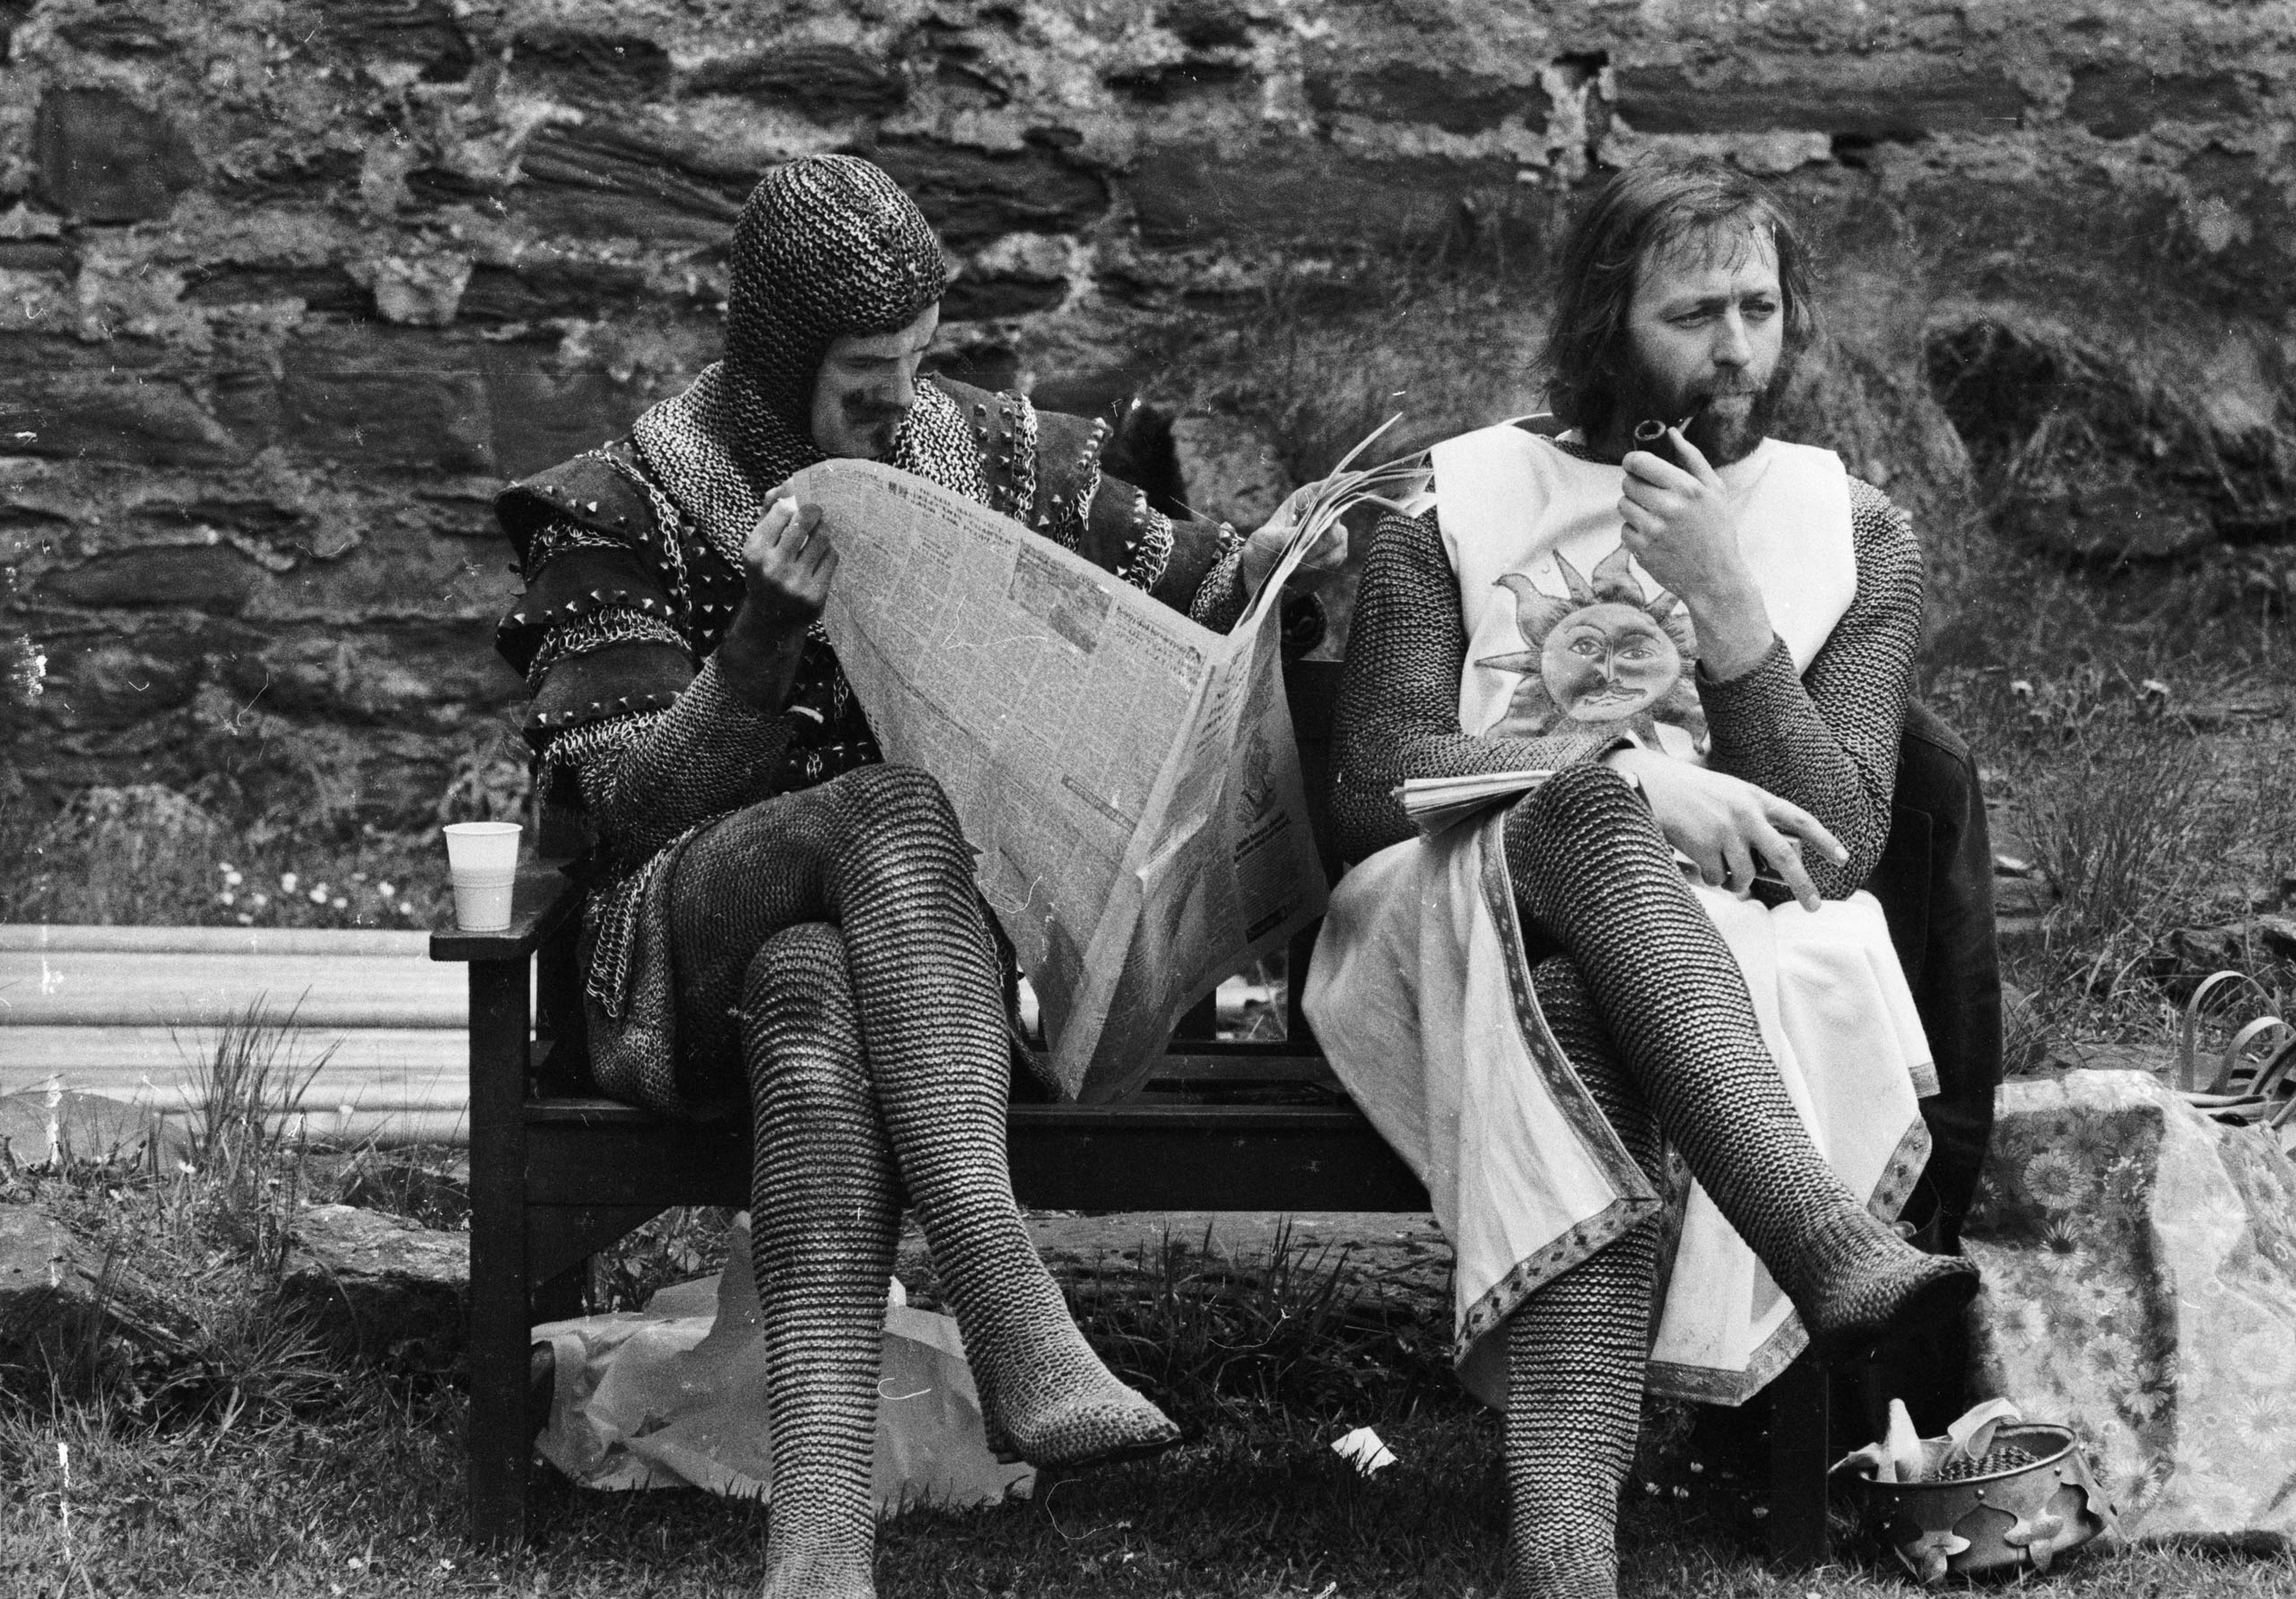 <strong>Graham Chapman, <i>Monty Python and the Holy Grail</i></strong>                                   The late Chapman (pictured right) played multiple roles, just like the rest of the Monty Python troupe; he wasn't just God but also King Arthur and one of the Three-Headed Knight's three heads.